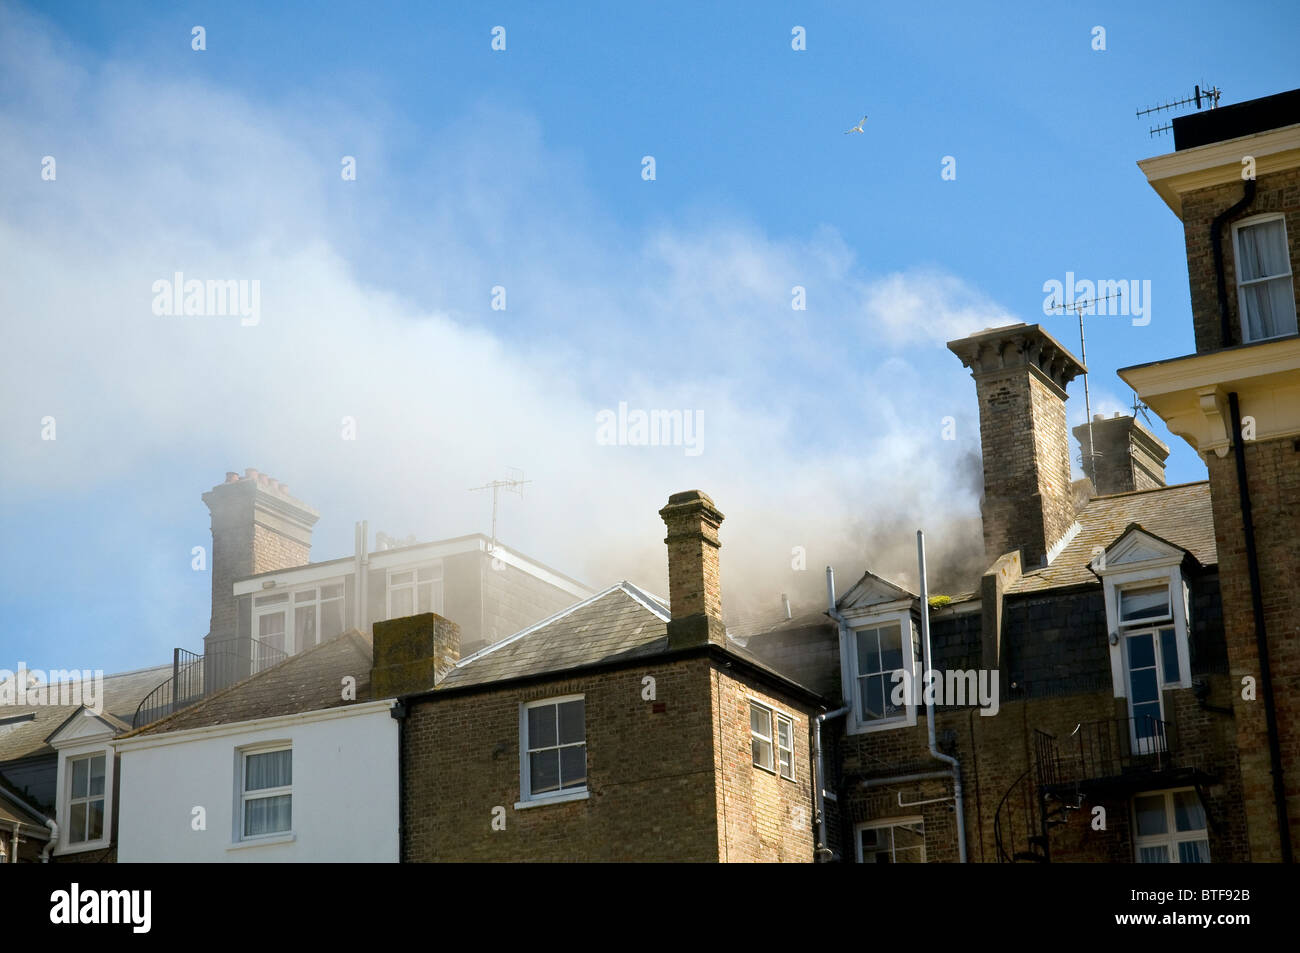 Smoke emerging from a fire in an upstairs flat in Worthing, West Sussex, UK - Stock Image